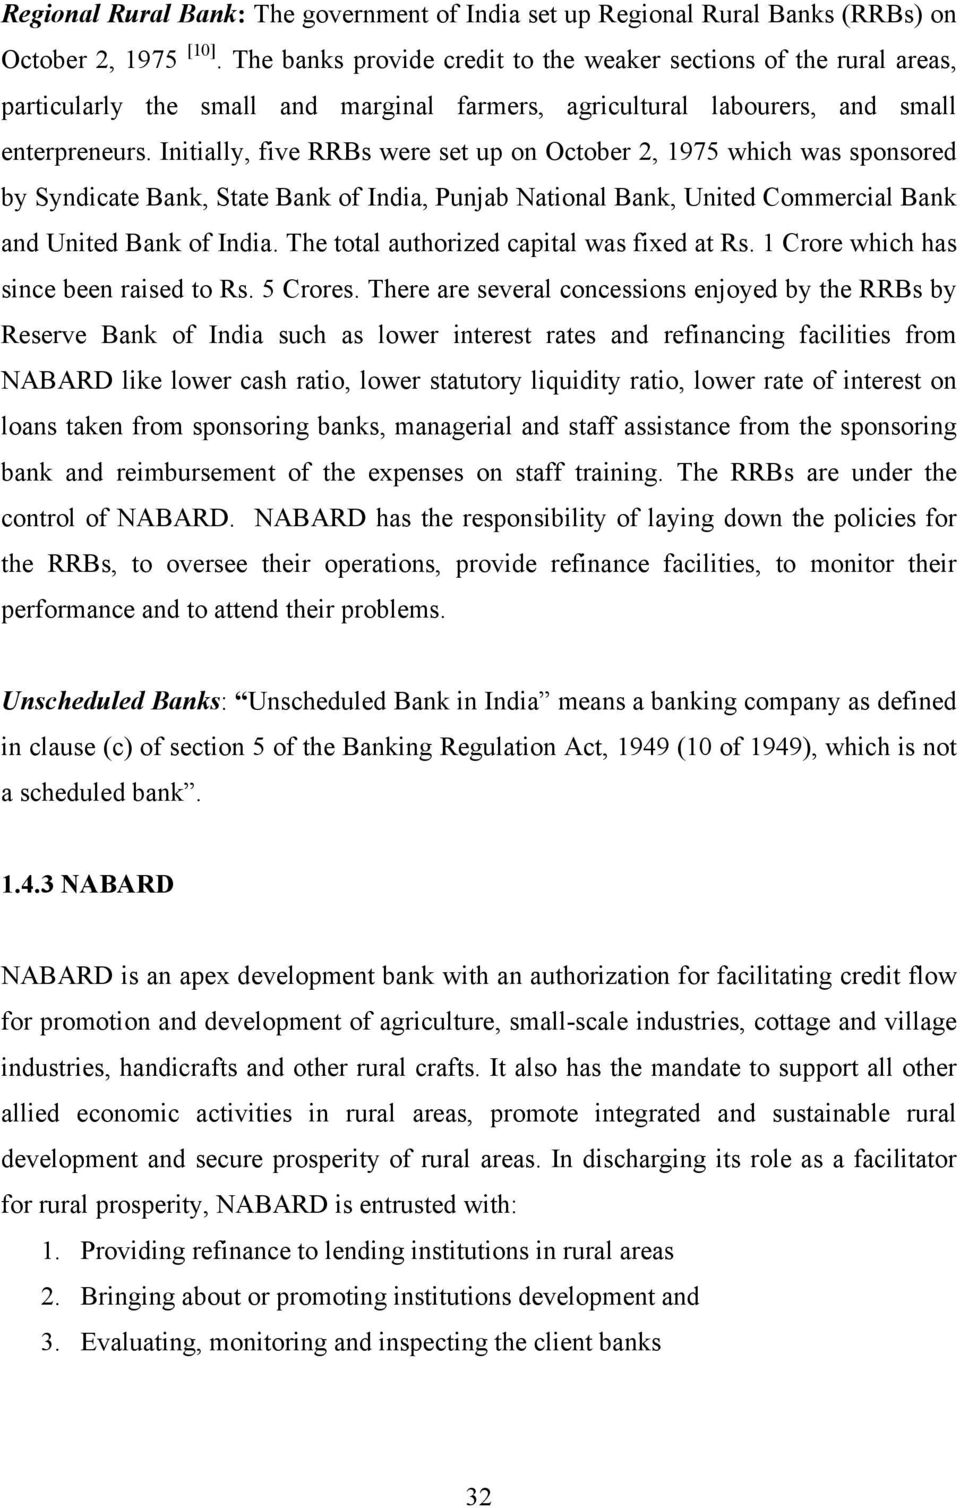 Initially, five RRBs were set up on October 2, 1975 which was sponsored by Syndicate Bank, State Bank of India, Punjab National Bank, United Commercial Bank and United Bank of India.